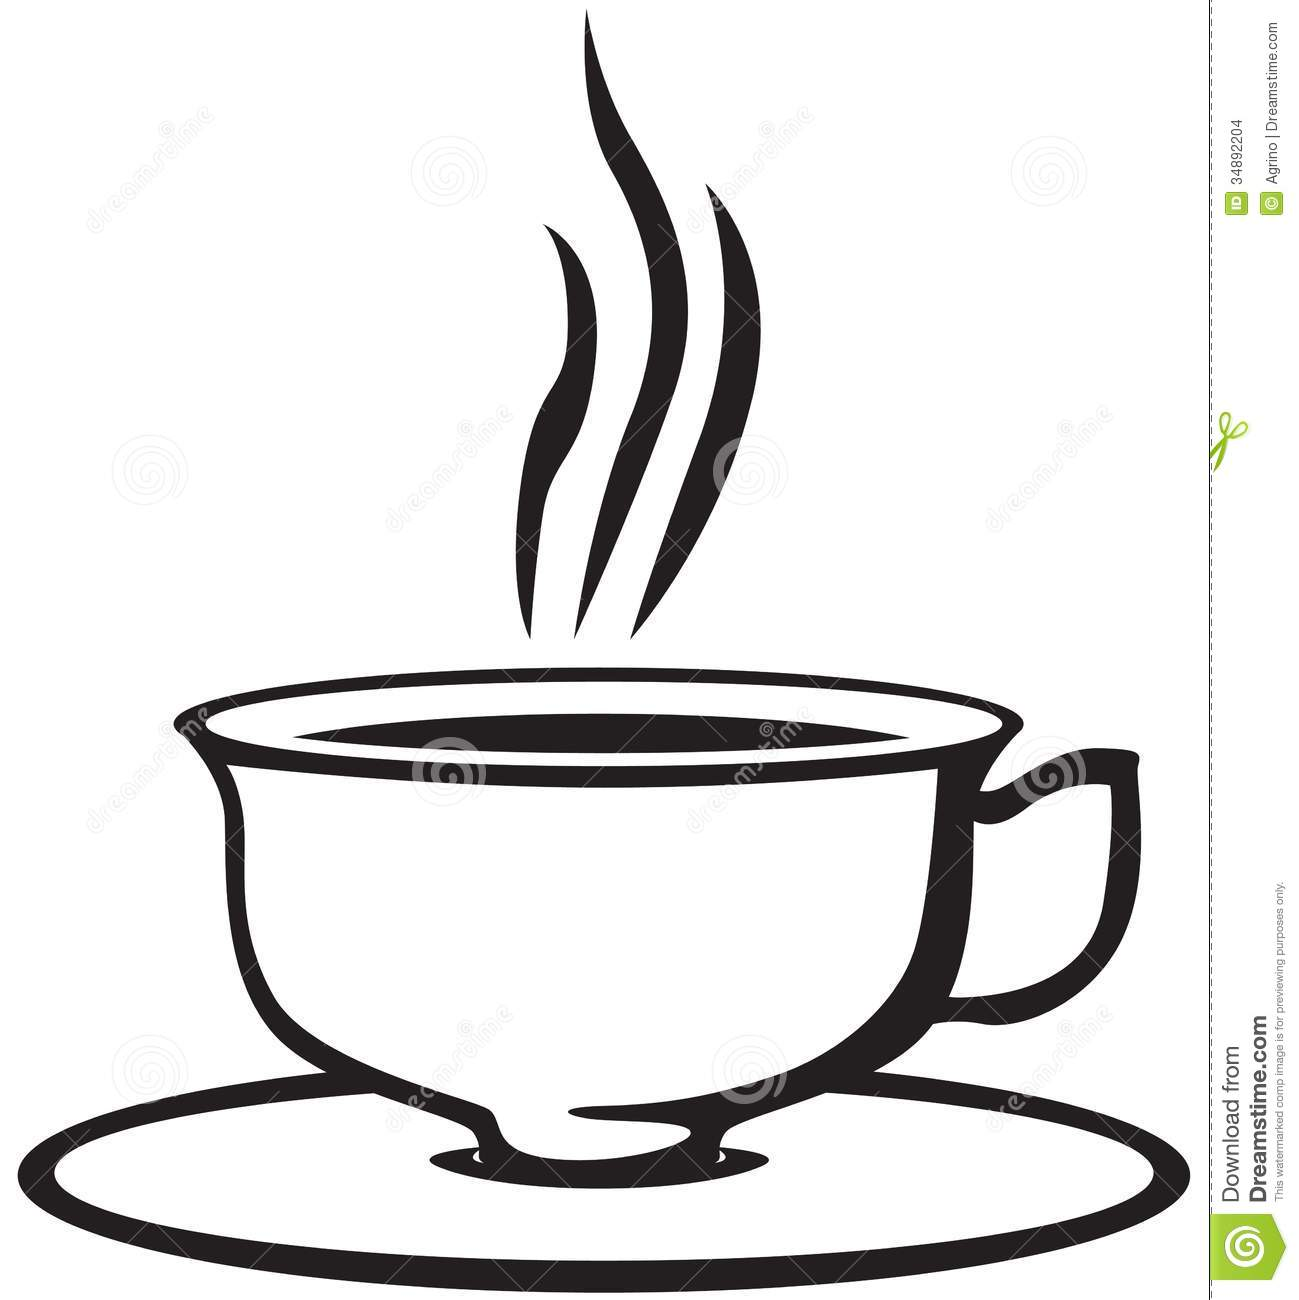 Tea Cup clipart #17, Download drawings